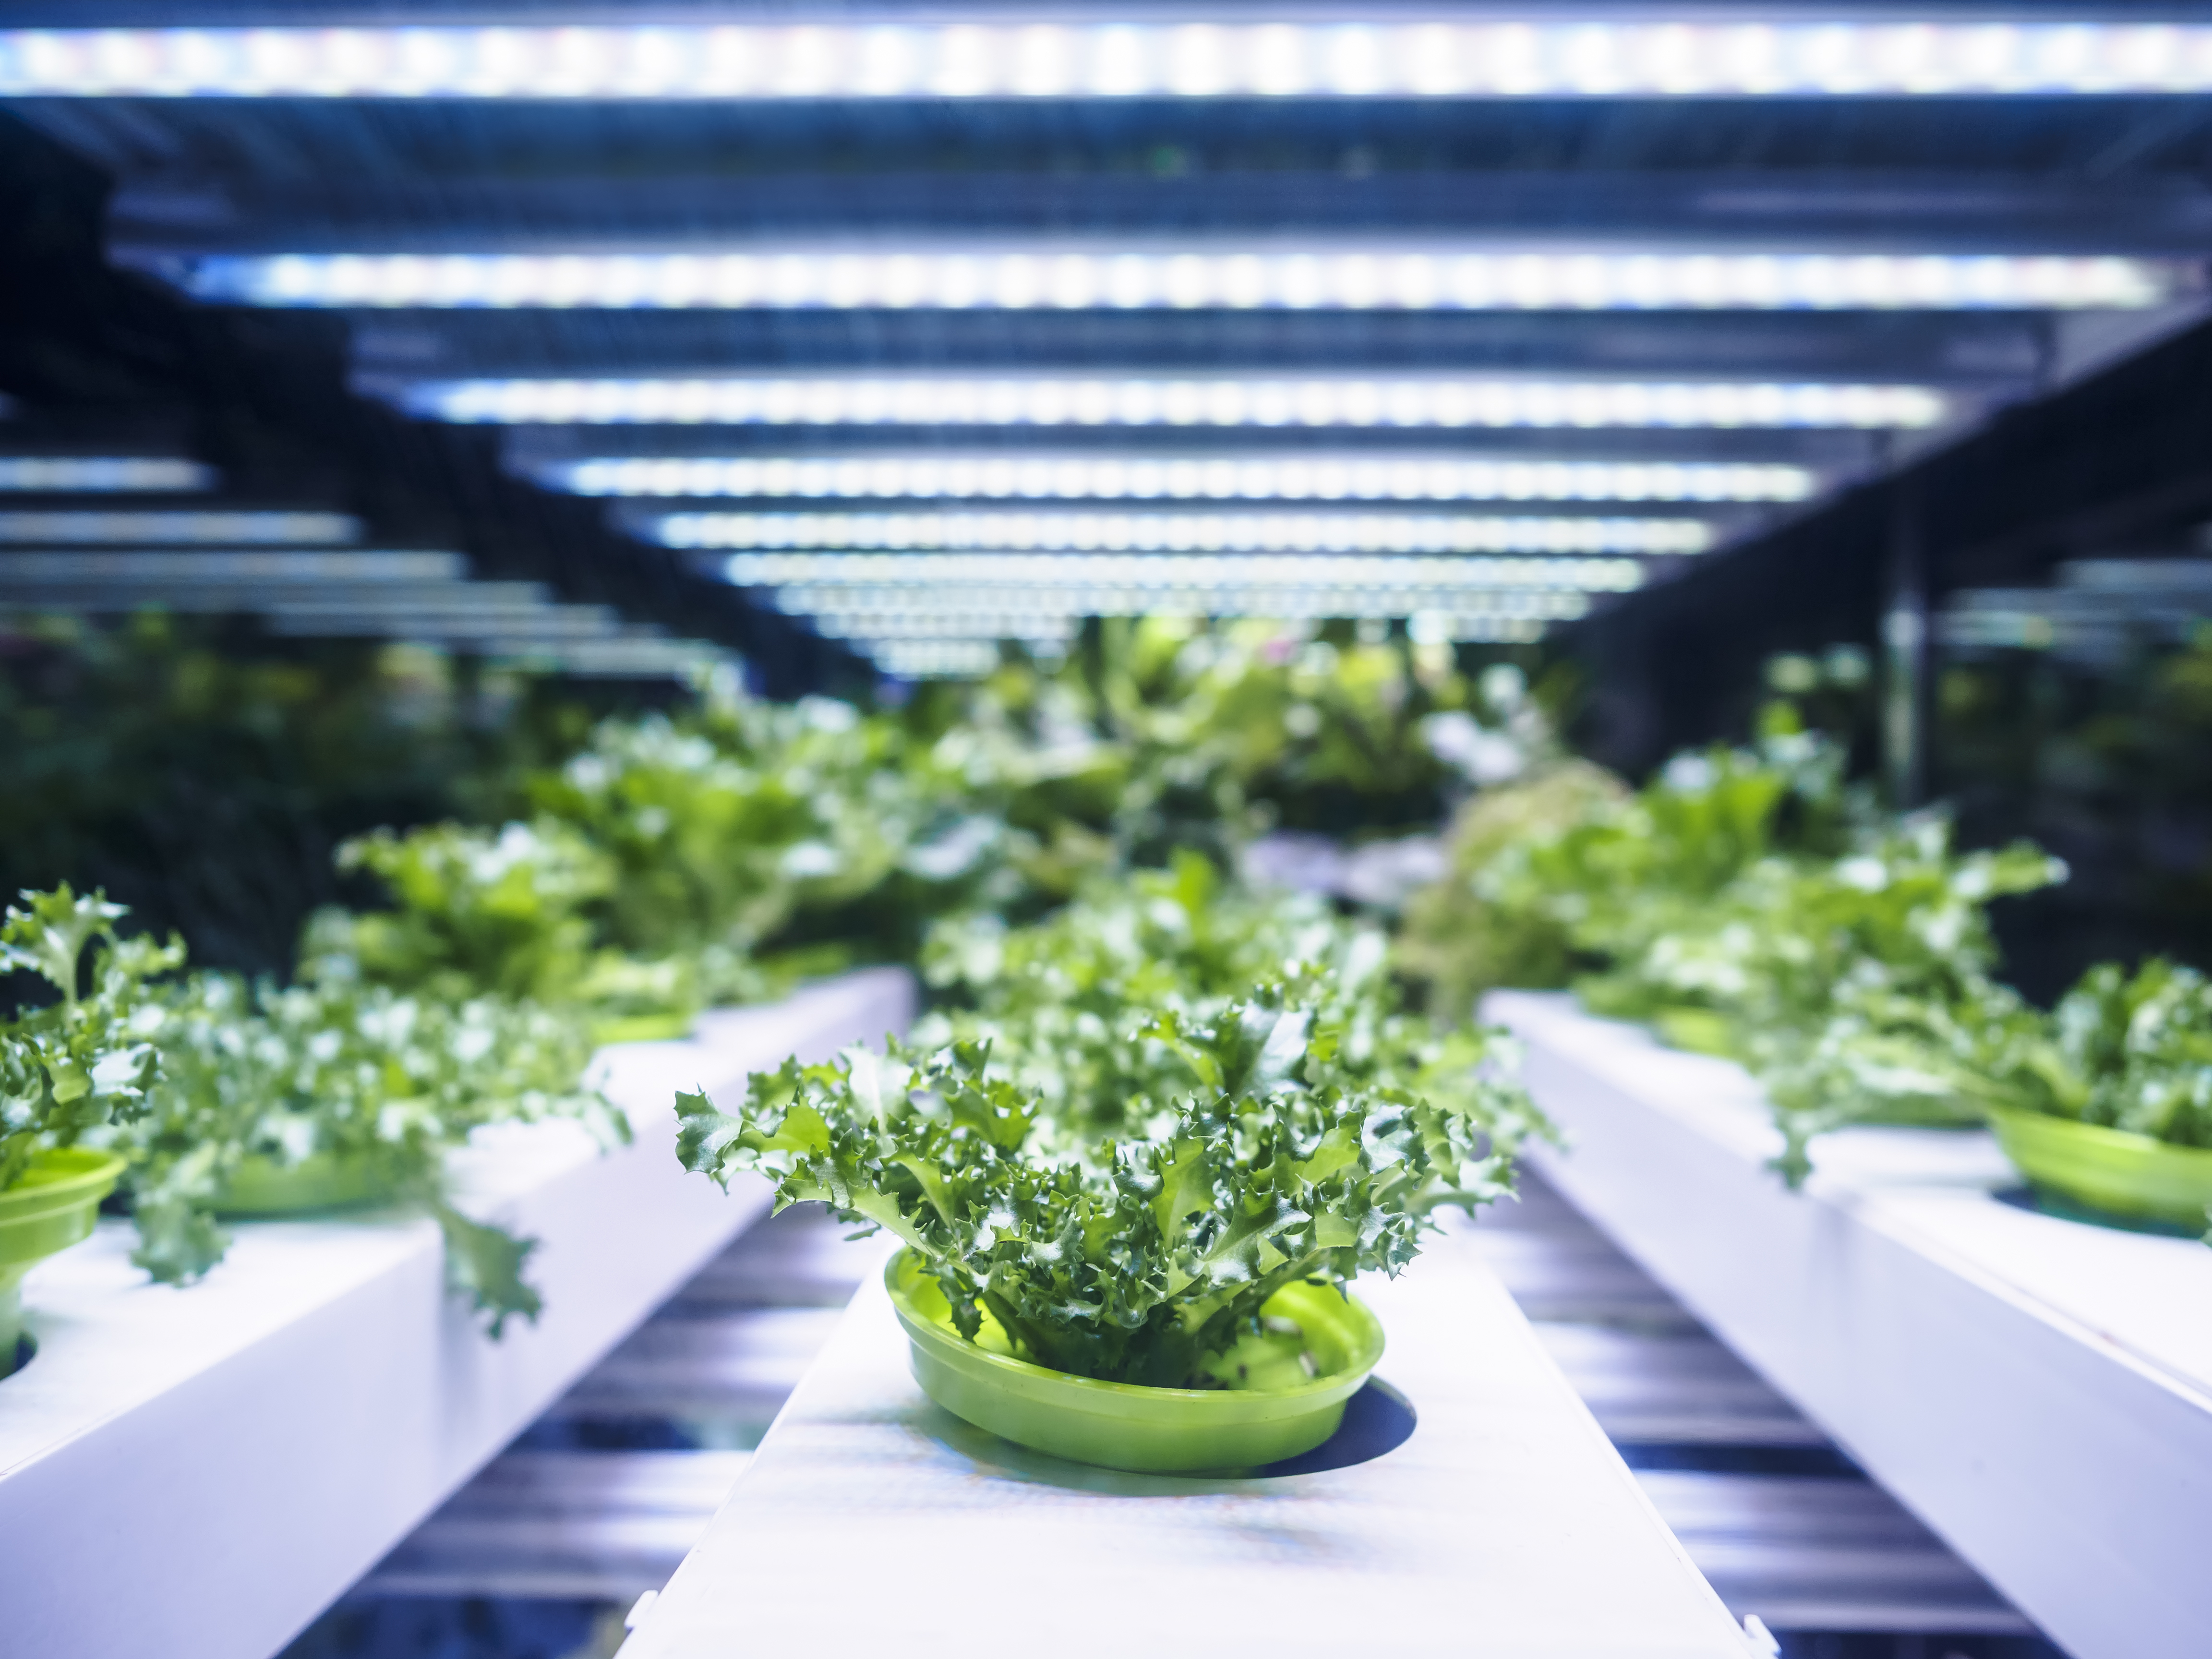 Hydroponic setup with artificial light